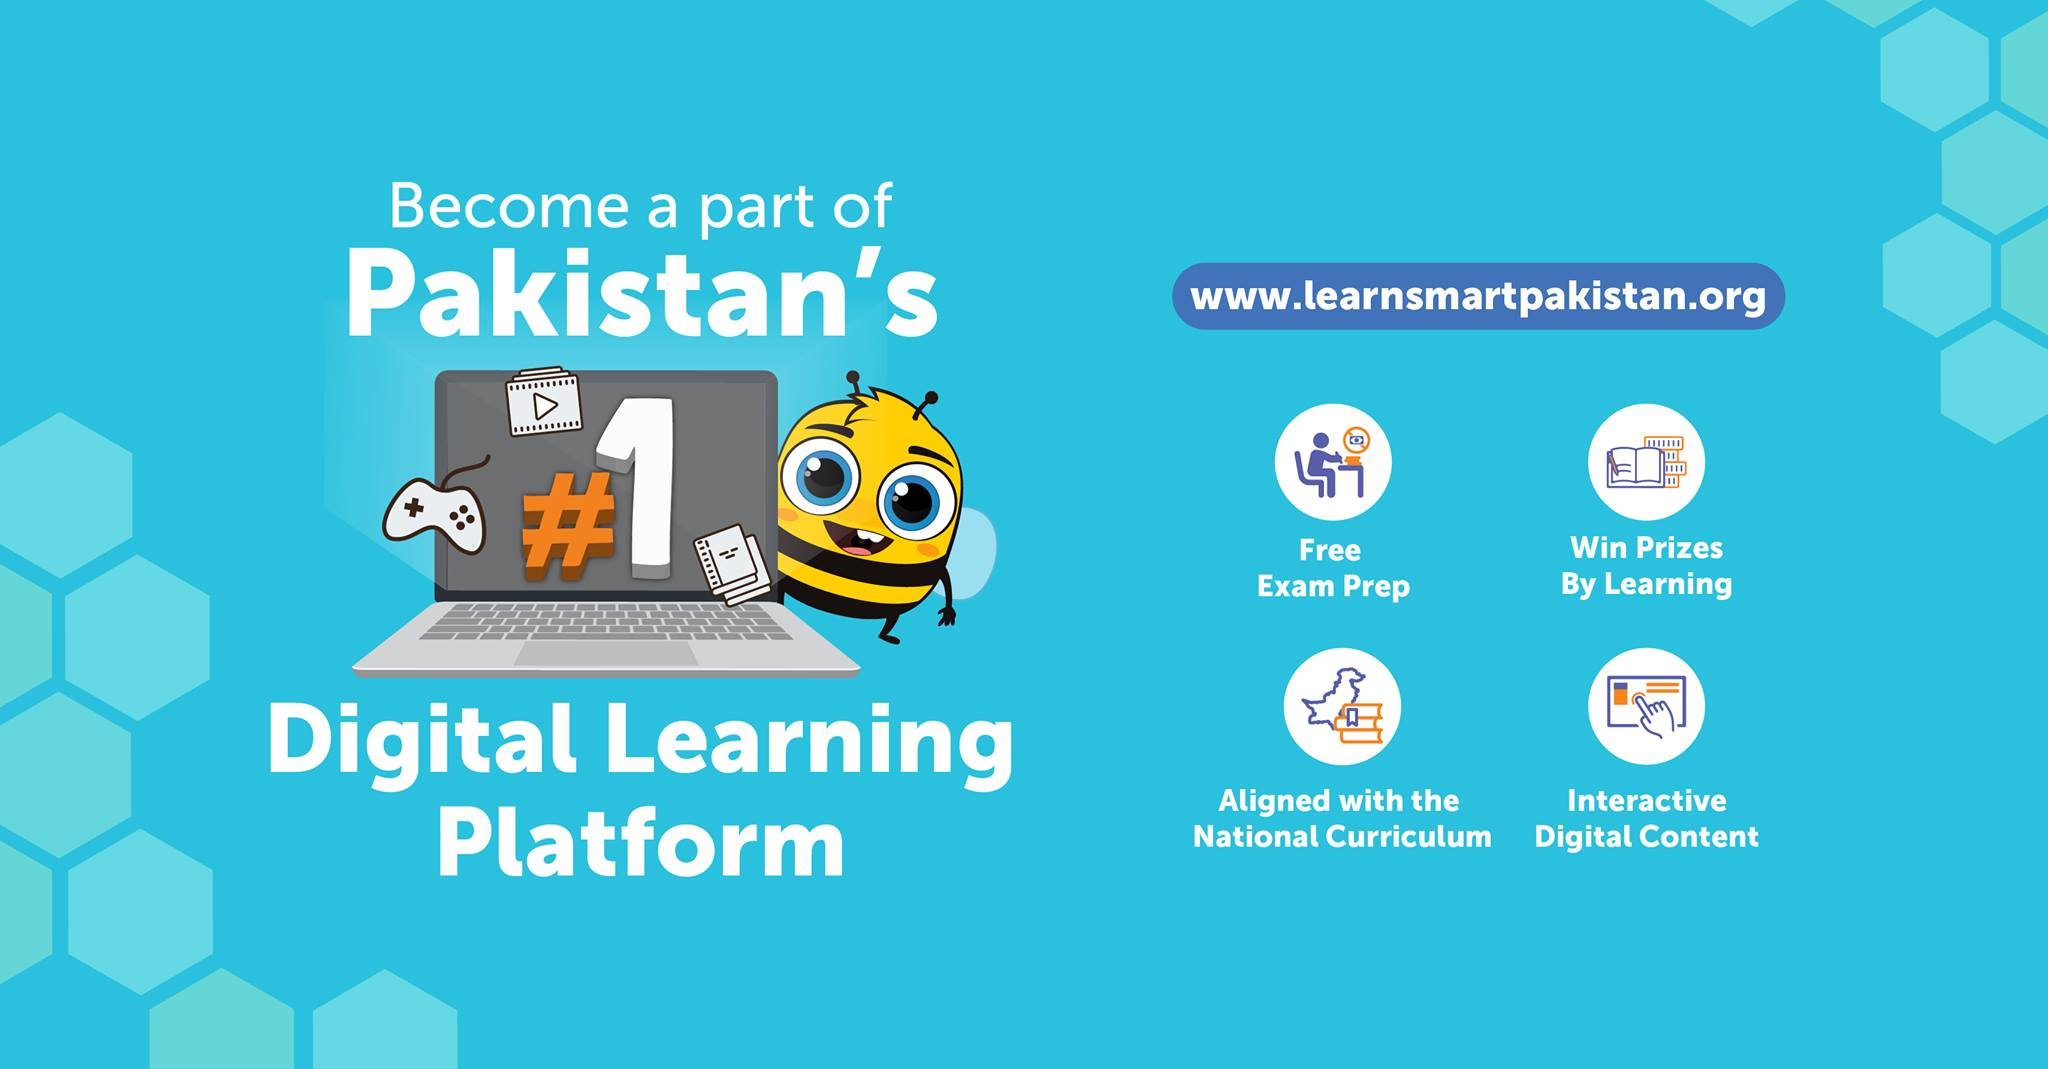 learn smart Pakistan digital learning